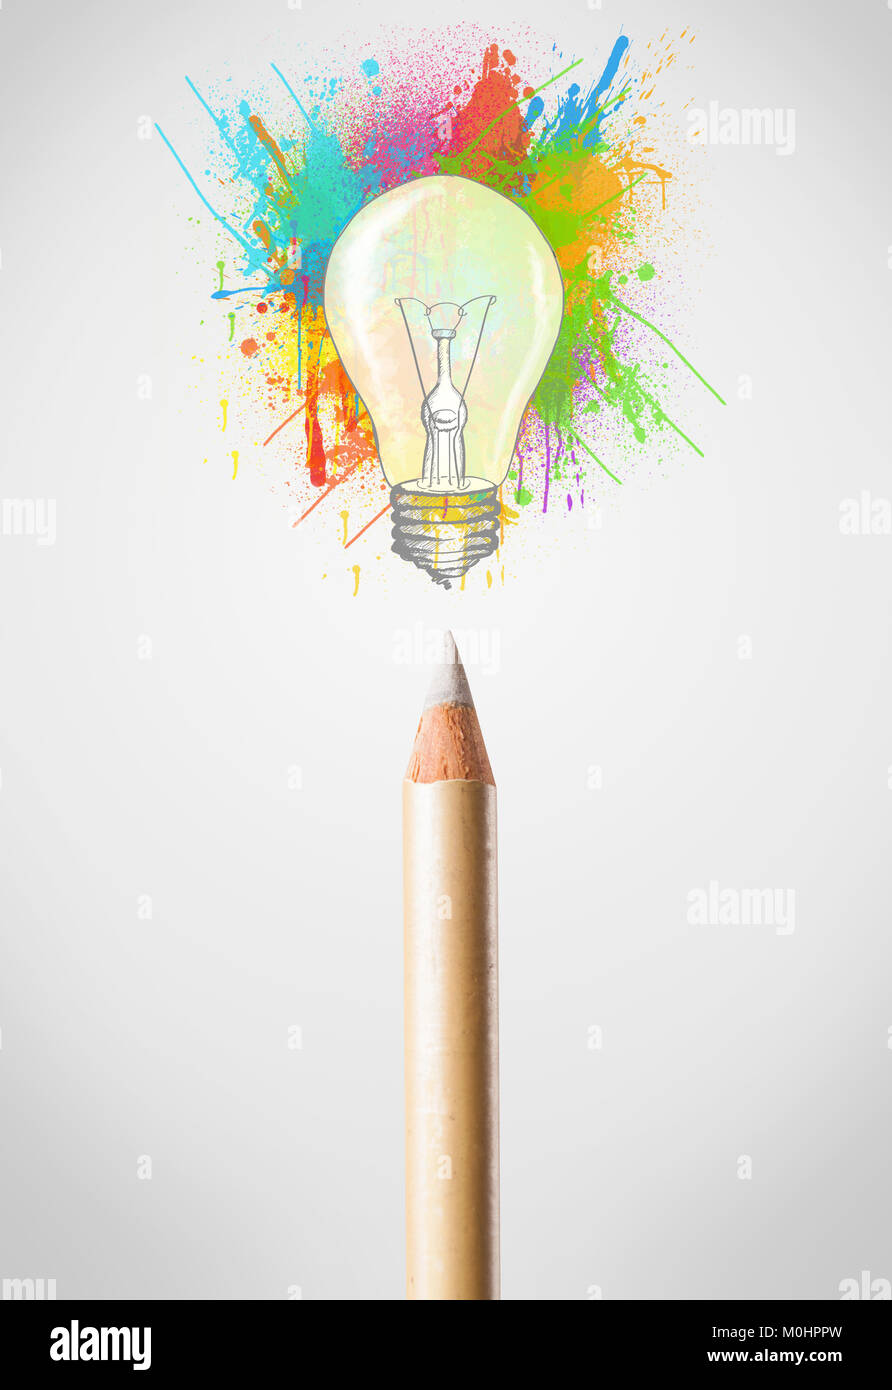 Colored Pencil Close Up With Colored Paint Splashes And Lightbulb Stock Photo Alamy